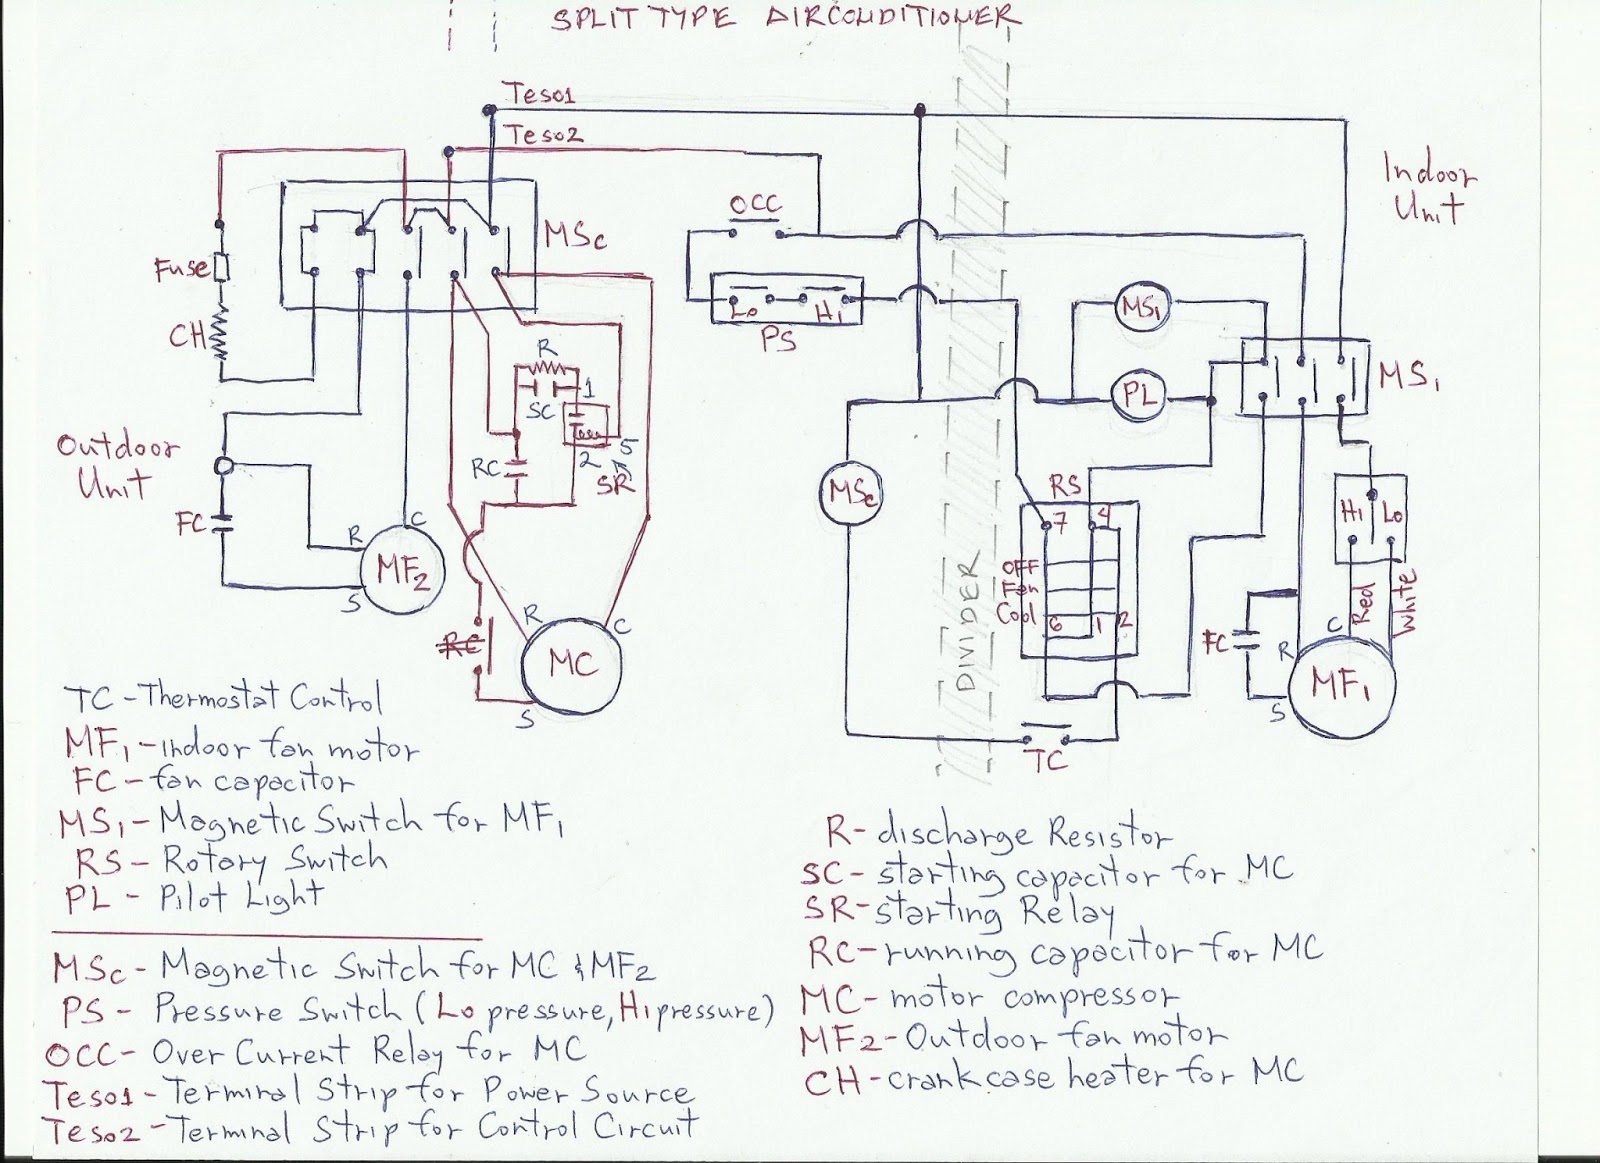 The analysis and design of linear circuits solutions